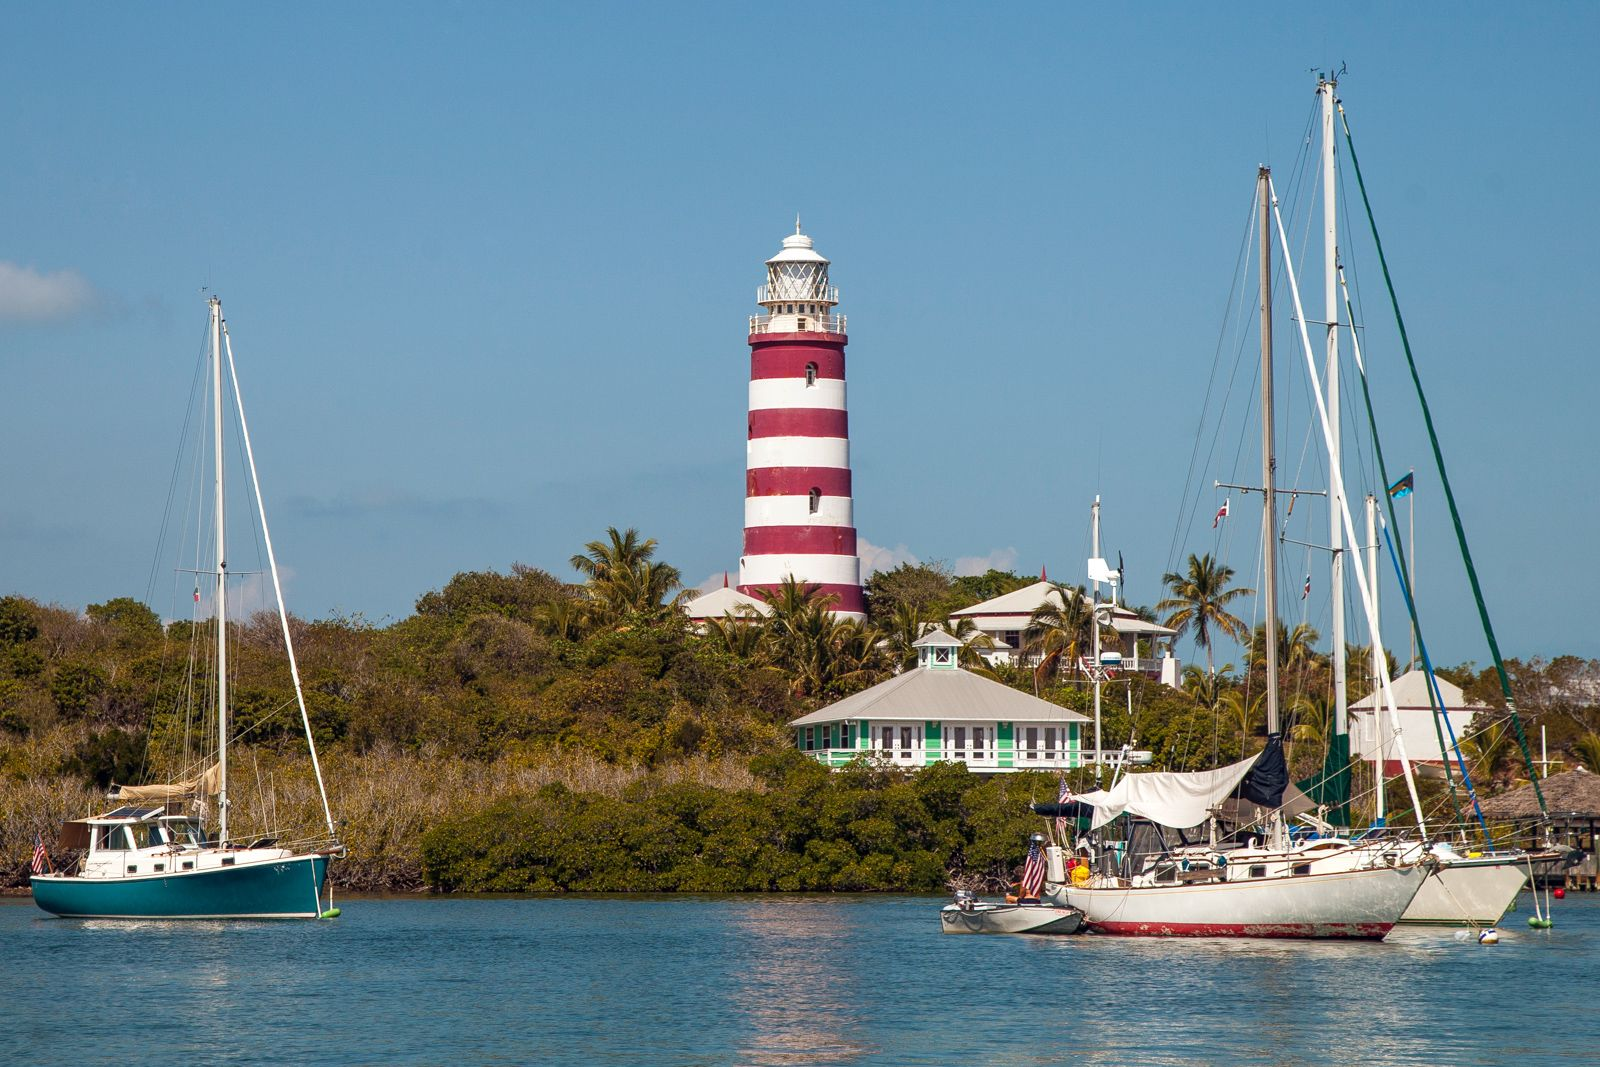 Island Hop The Bahamas Cays In The Abacos Bahamas Island Harbour Island Bahamas Abaco Bahamas